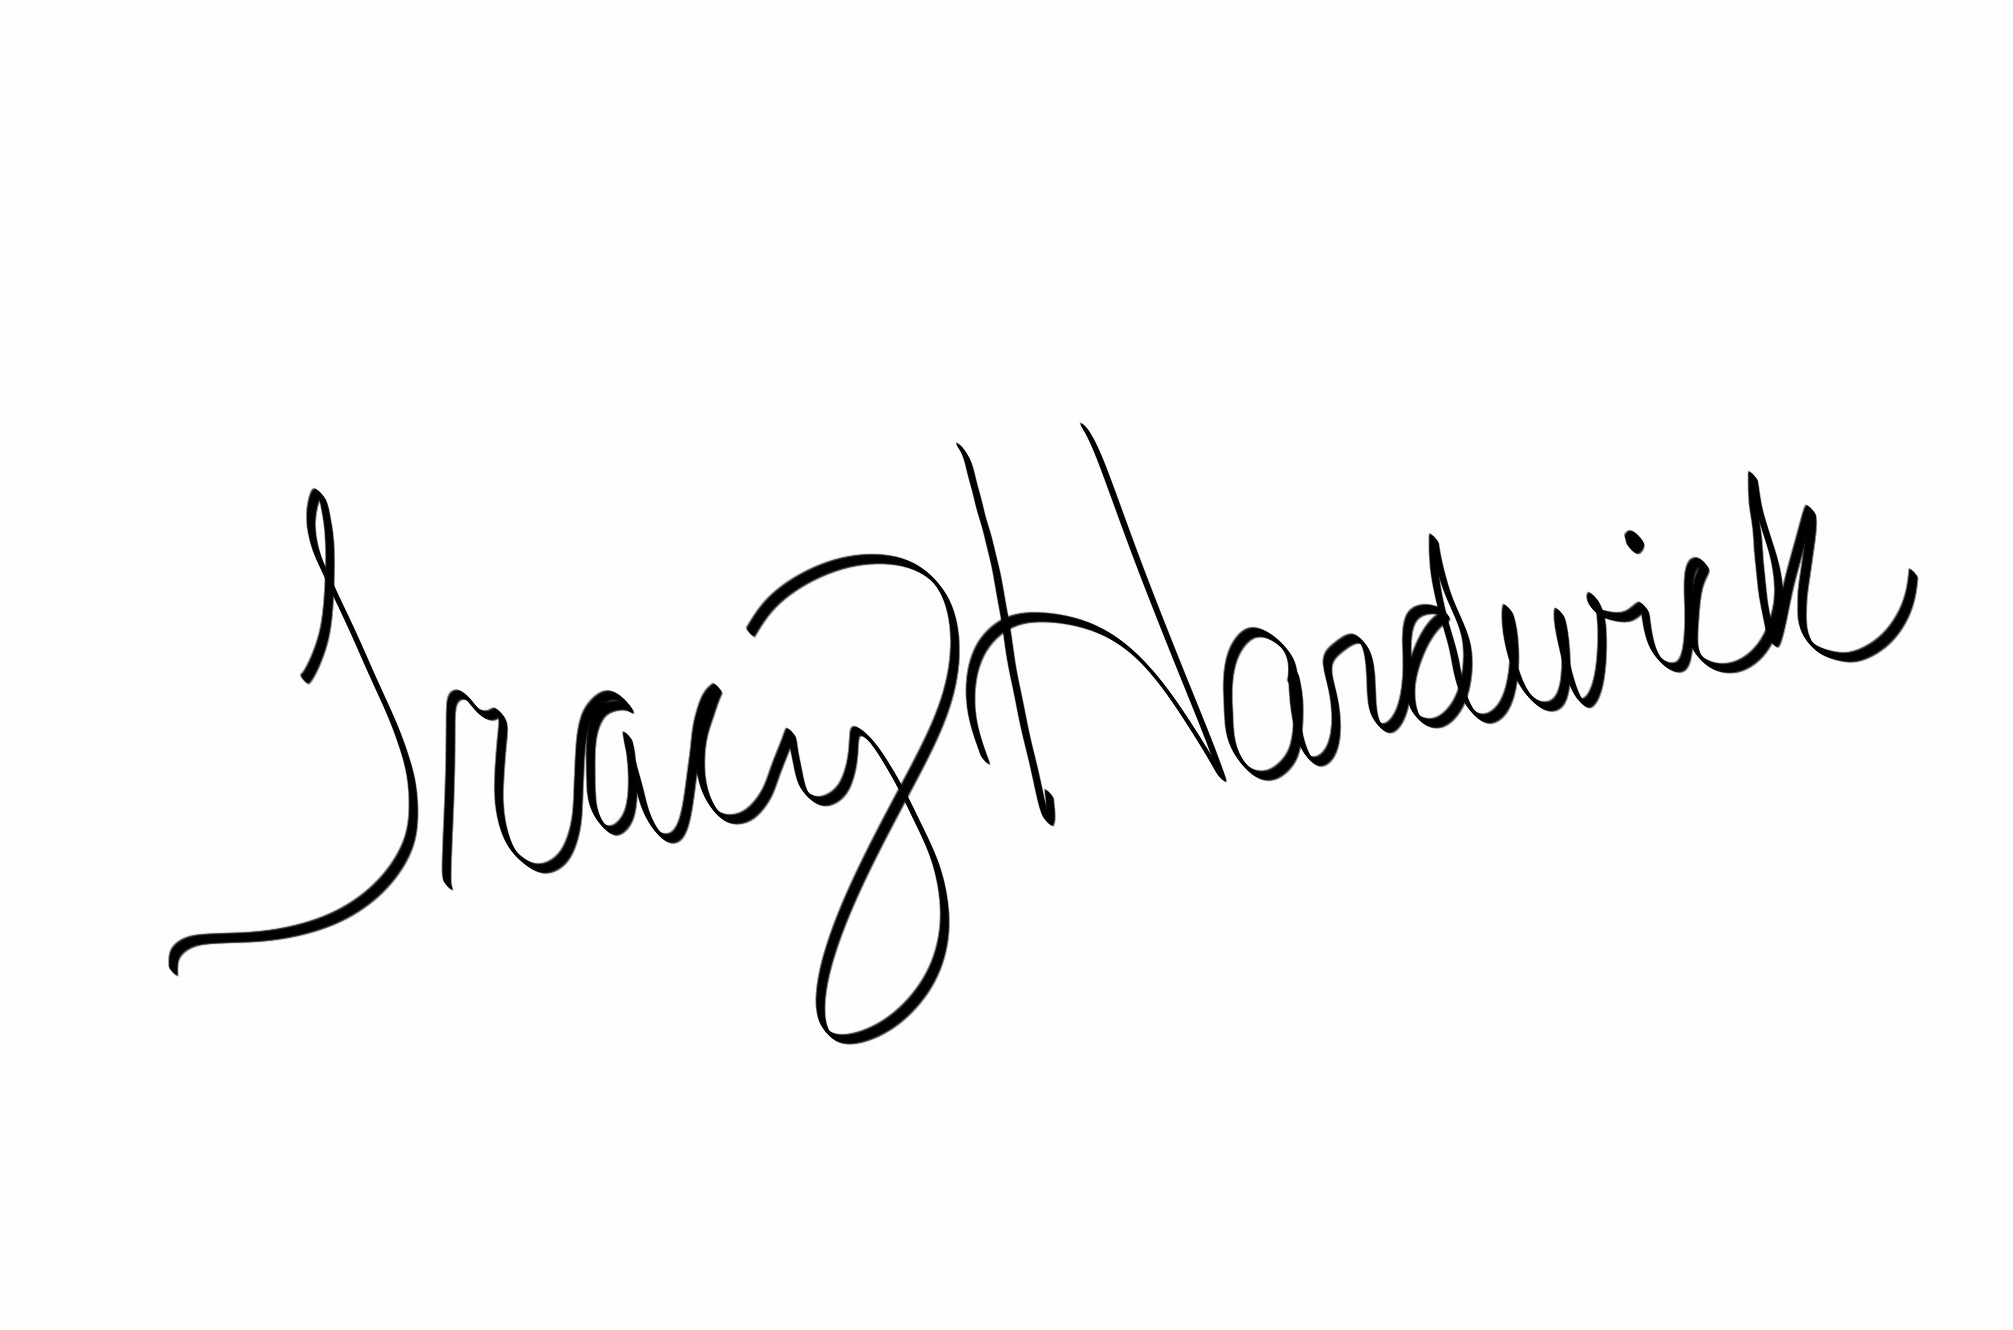 Tracy Hardwick's Signature